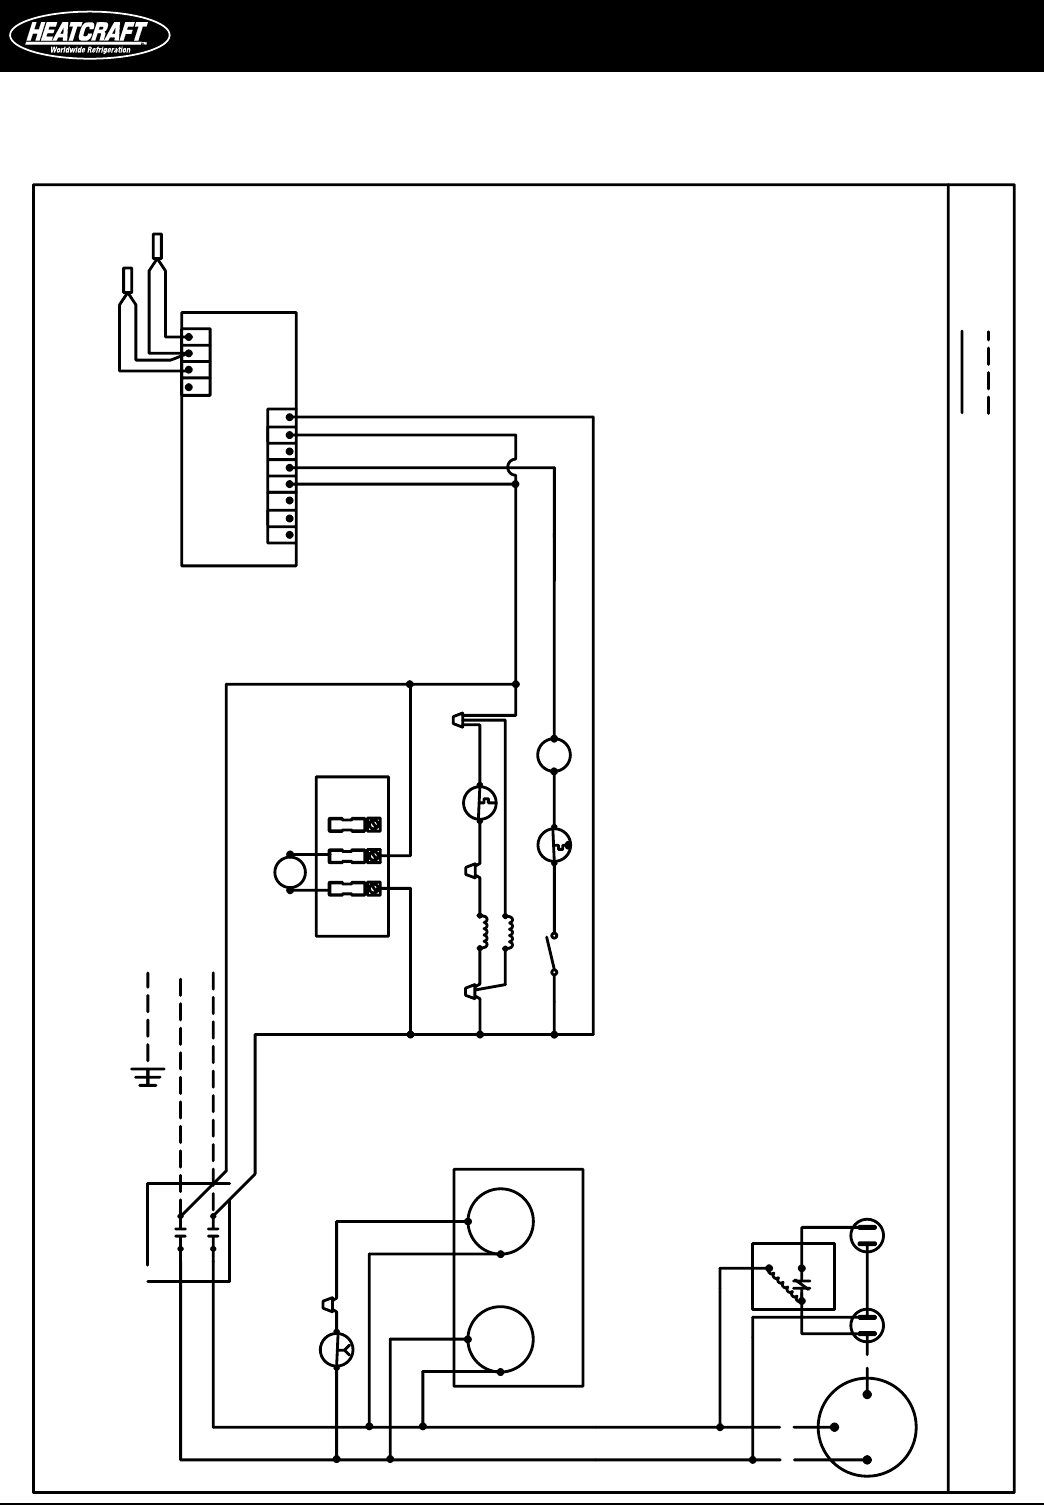 55587f91 c859 def4 0921 730c5709c050 bg10 page 16 of heatcraft refrigeration products refrigerator pro3 user heatcraft freezer wiring diagram at bayanpartner.co